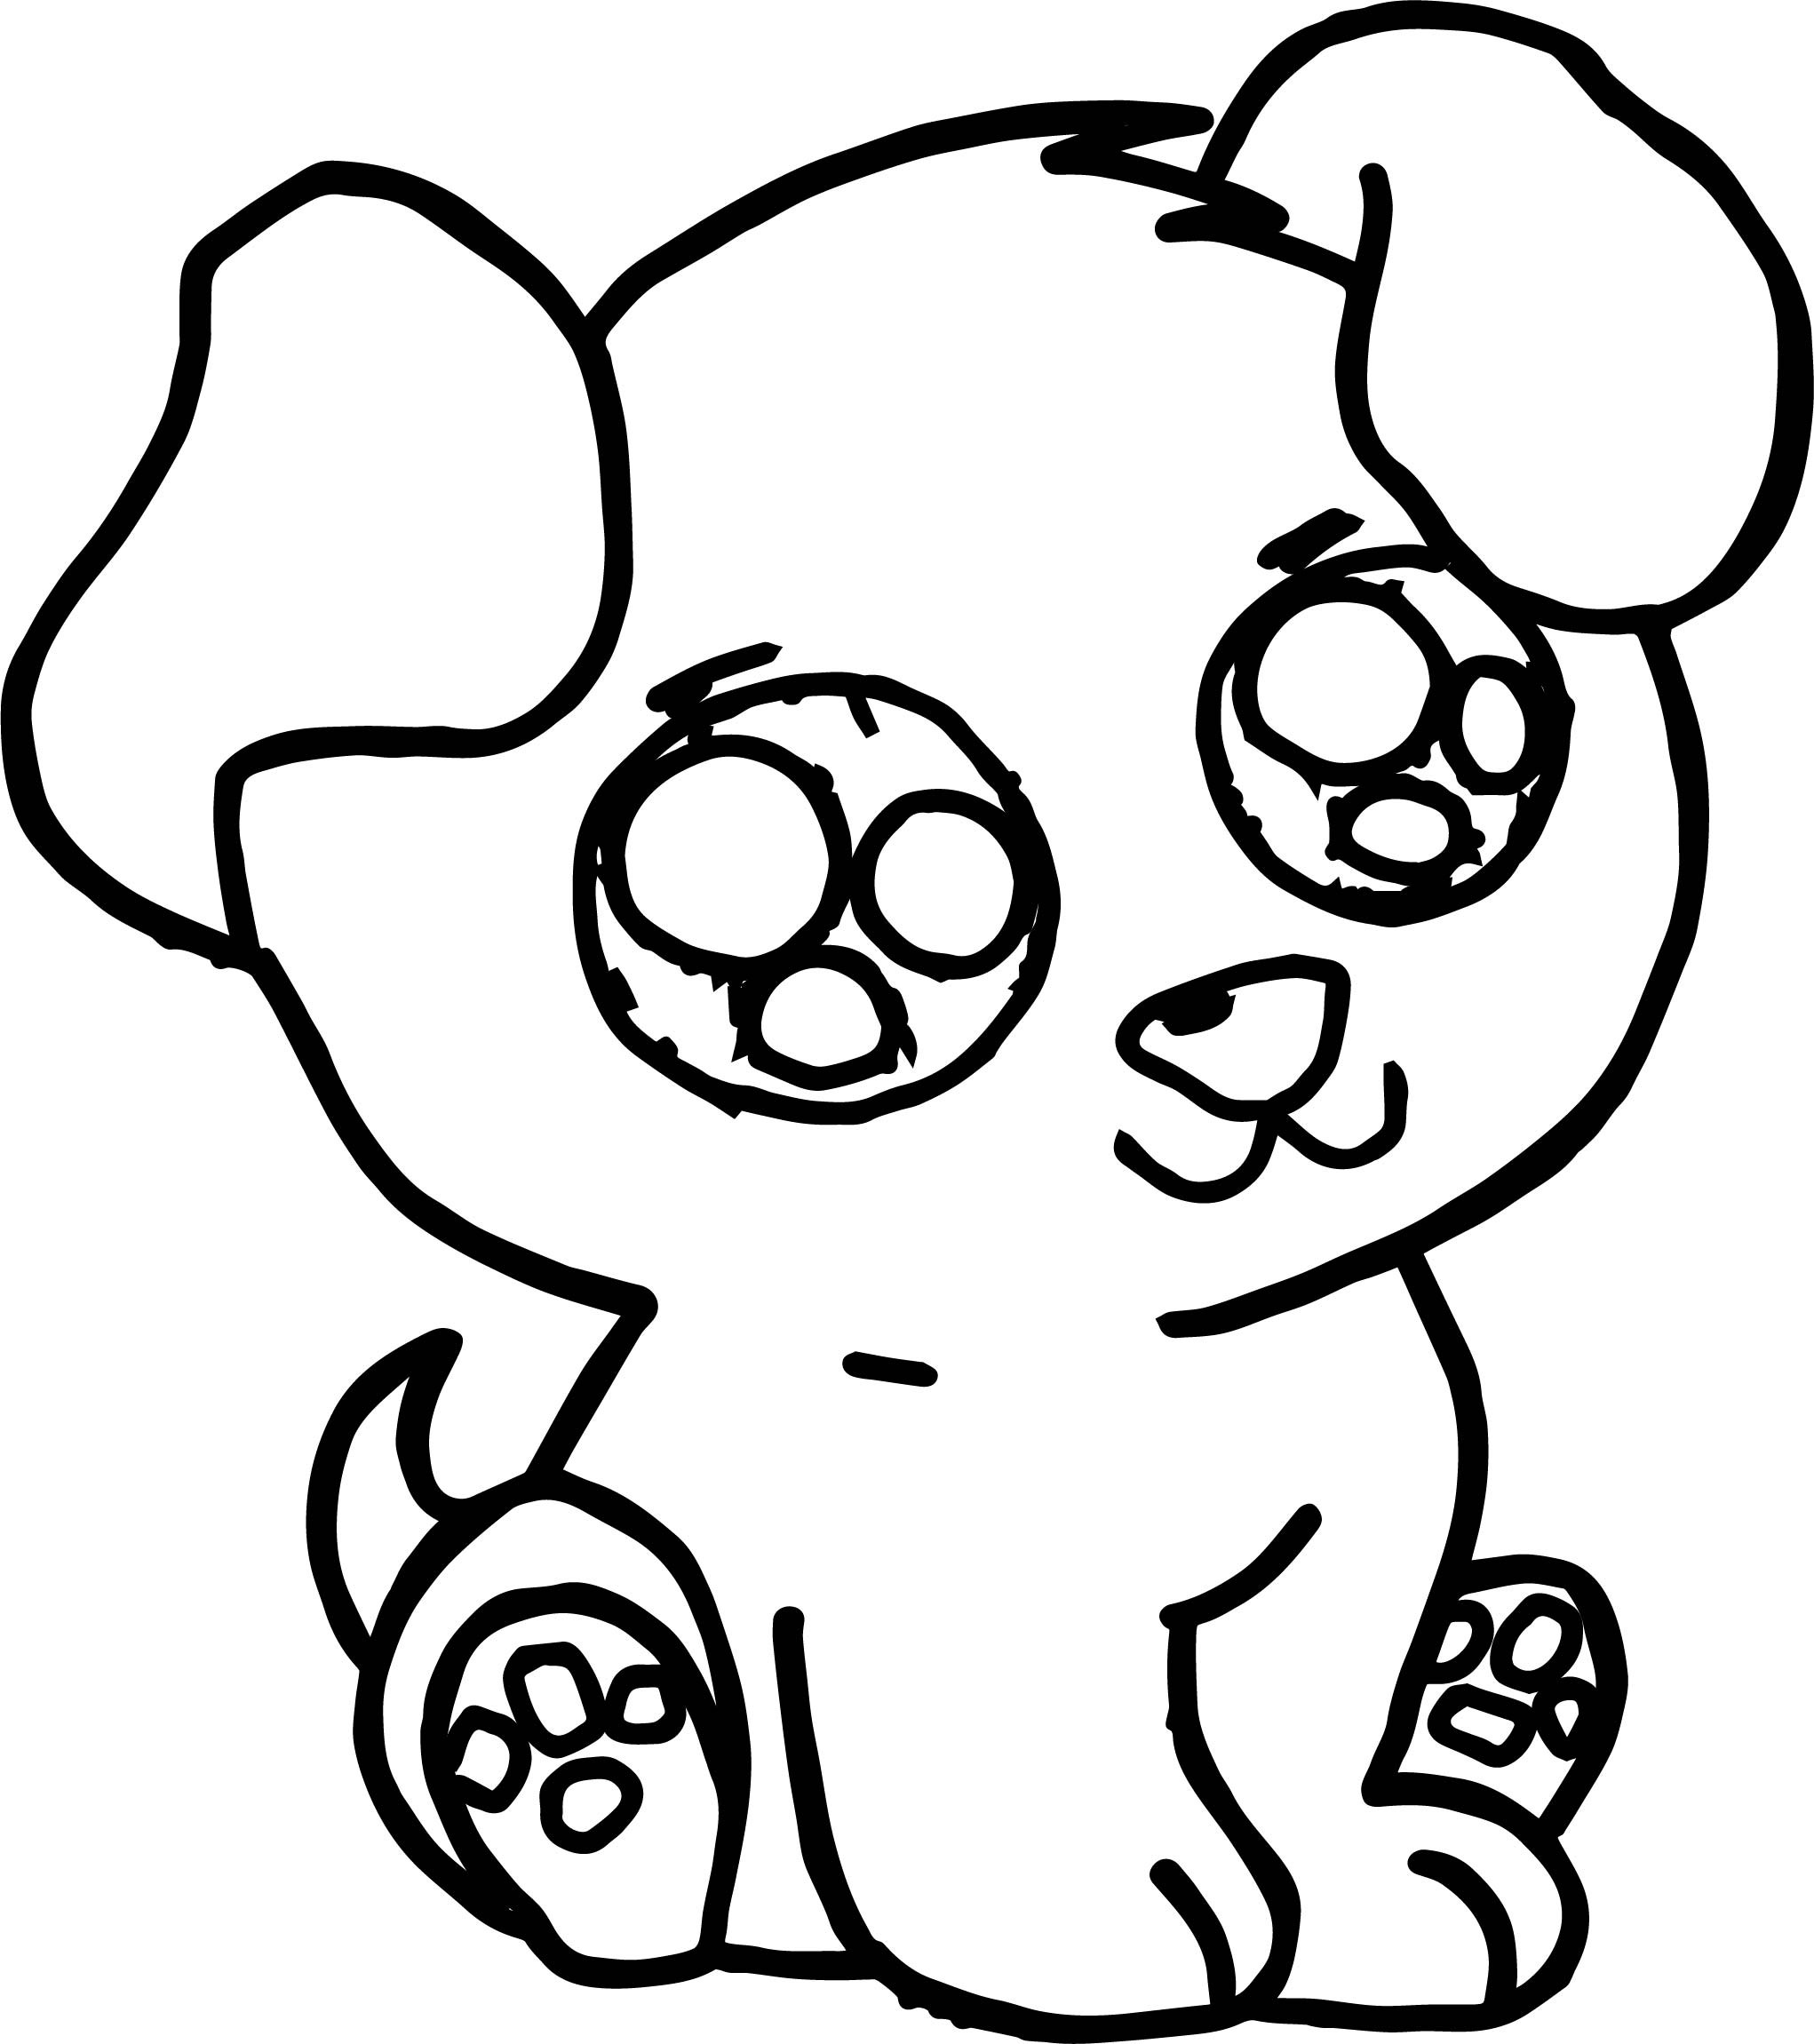 Awesome 2042x2301 Dog Paw Coloring Page Leversetdujour.info